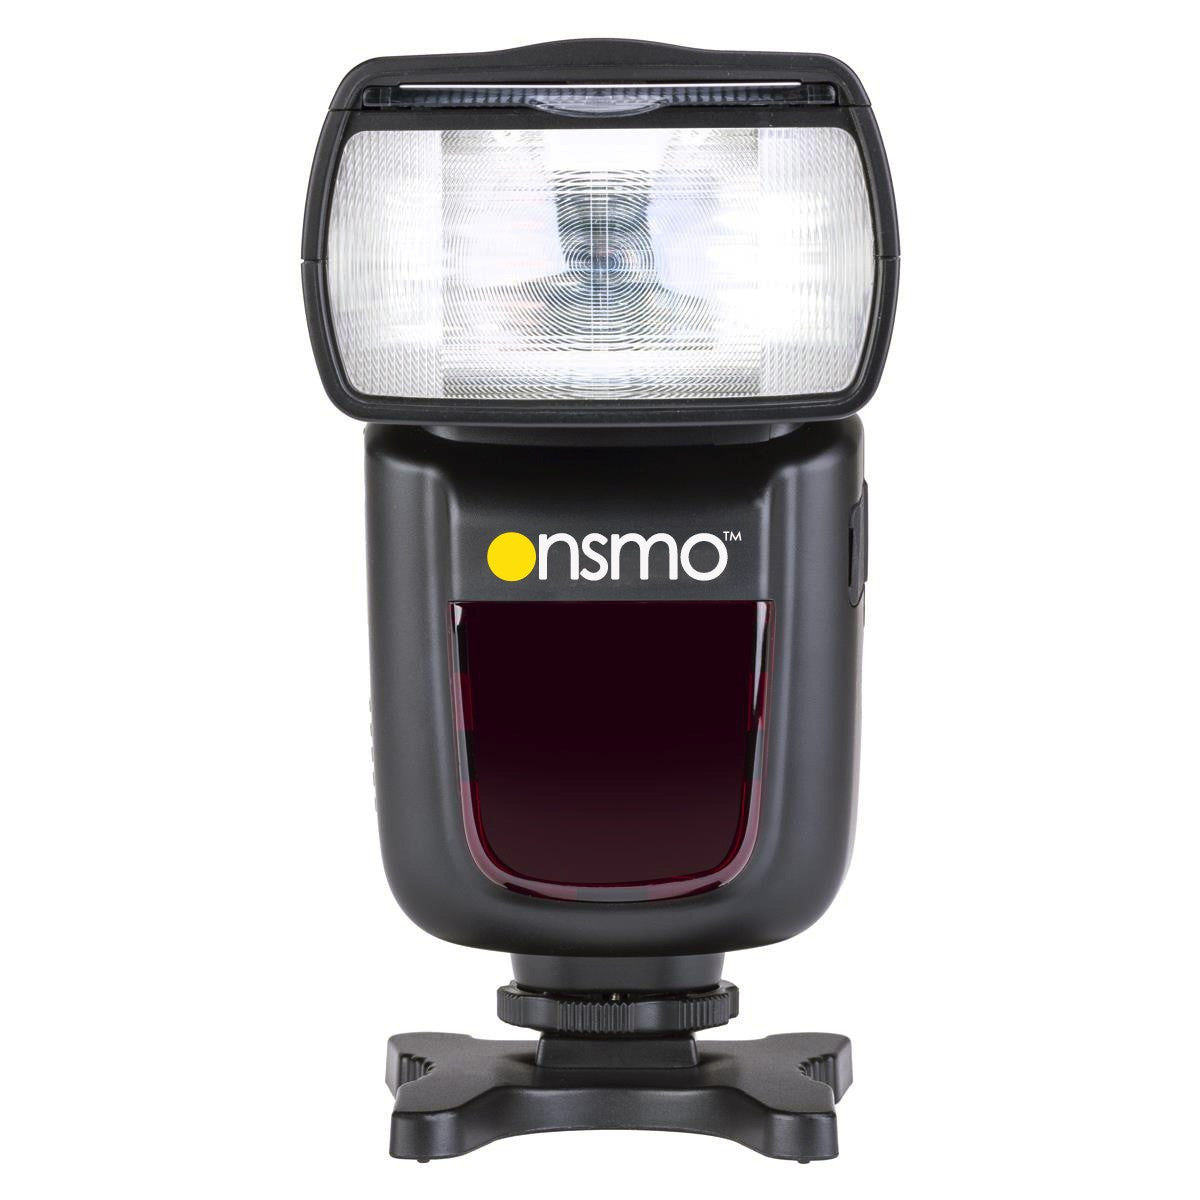 Onsmo LX800 Speedlight ( Manual ) Combo A ( 1 x LX800 + 1 x Speed X Trigger )